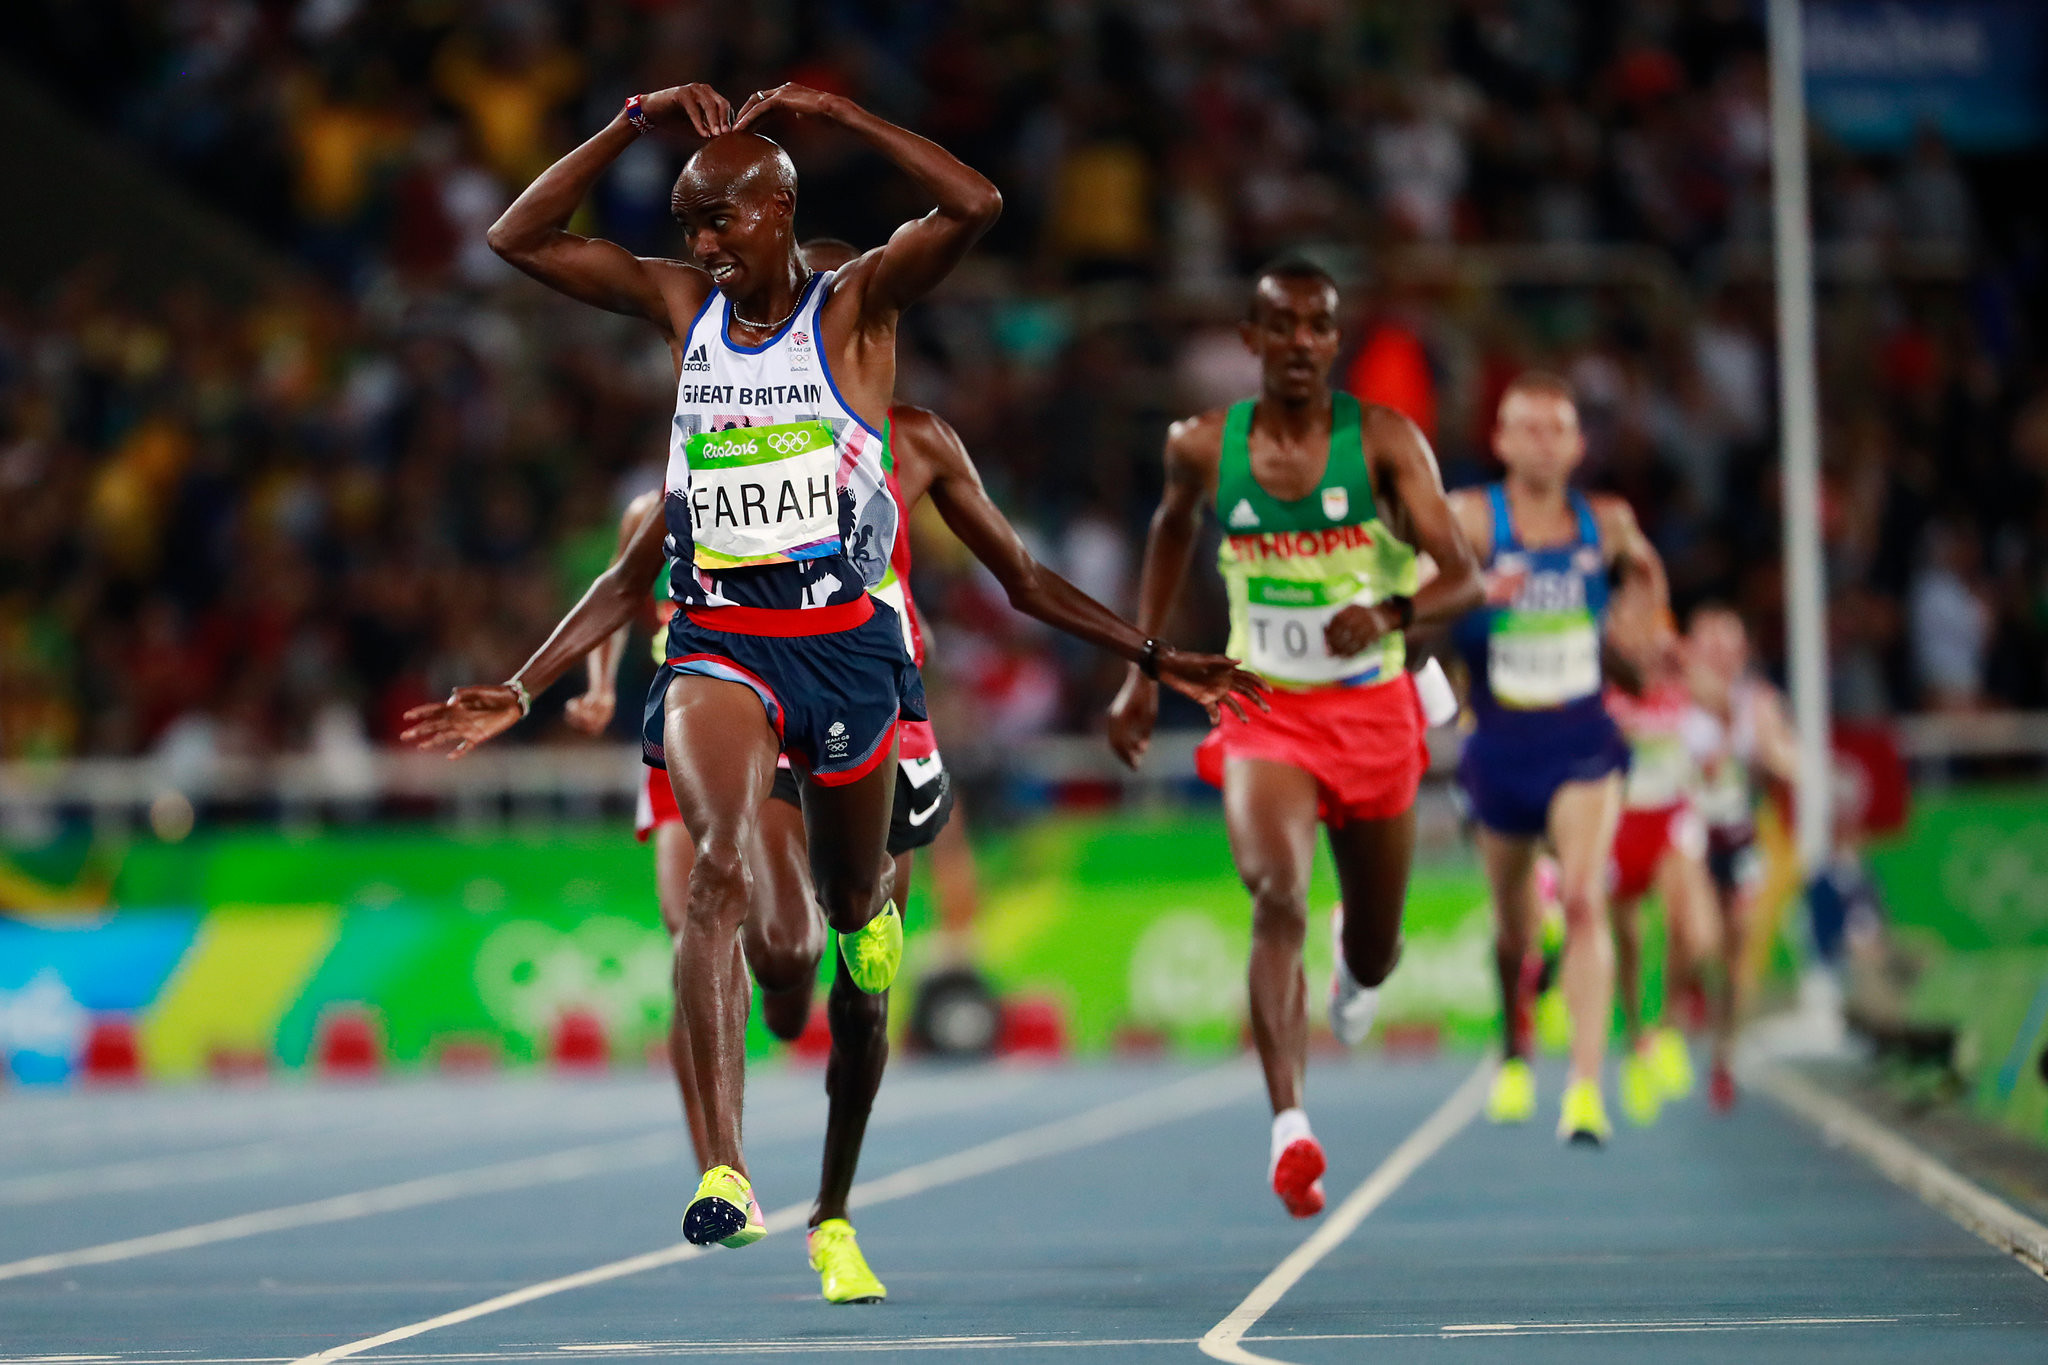 Sir Mo Farah says he can make history in Tokyo by winning 10,000m at the age of 37